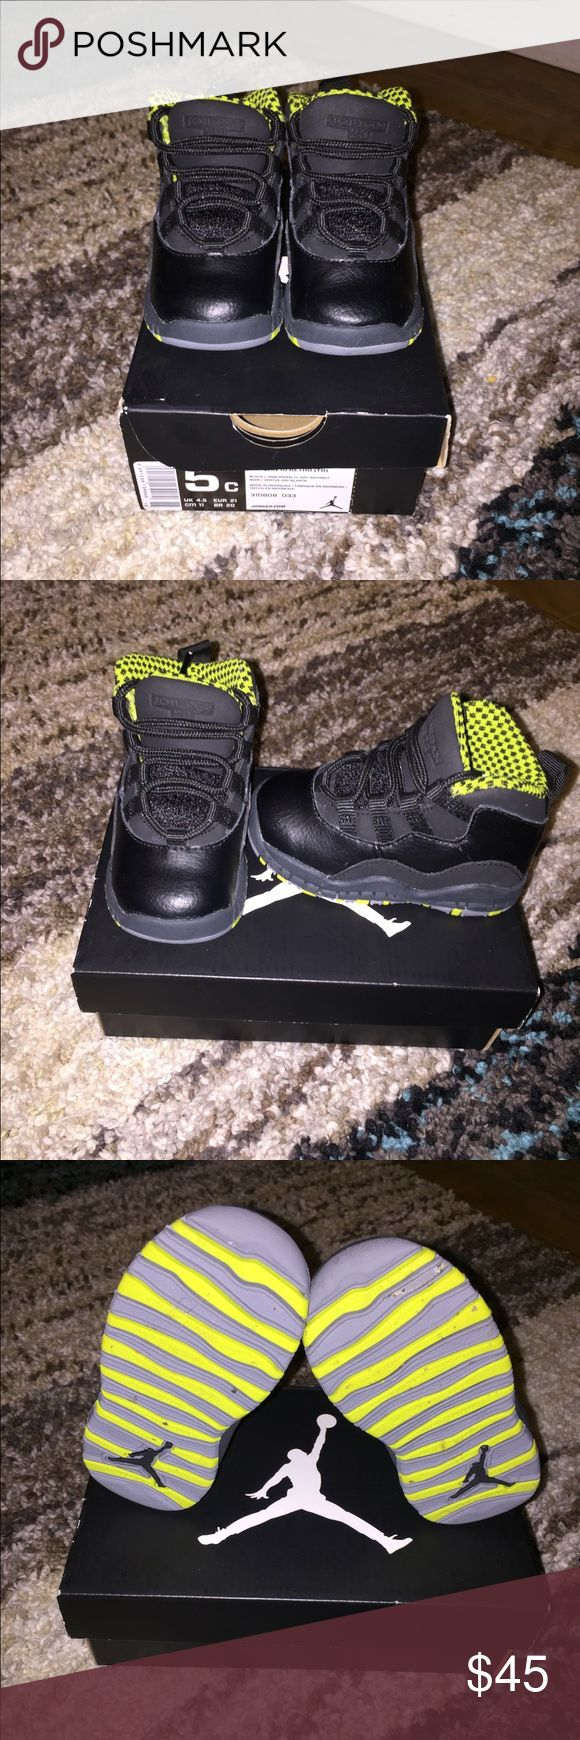 Kids Jordan's 10 retro Size 5 retro 10 Jordan. In almost new condition. Only worn a couple time. Comes with original box Jordan Shoes Sneakers